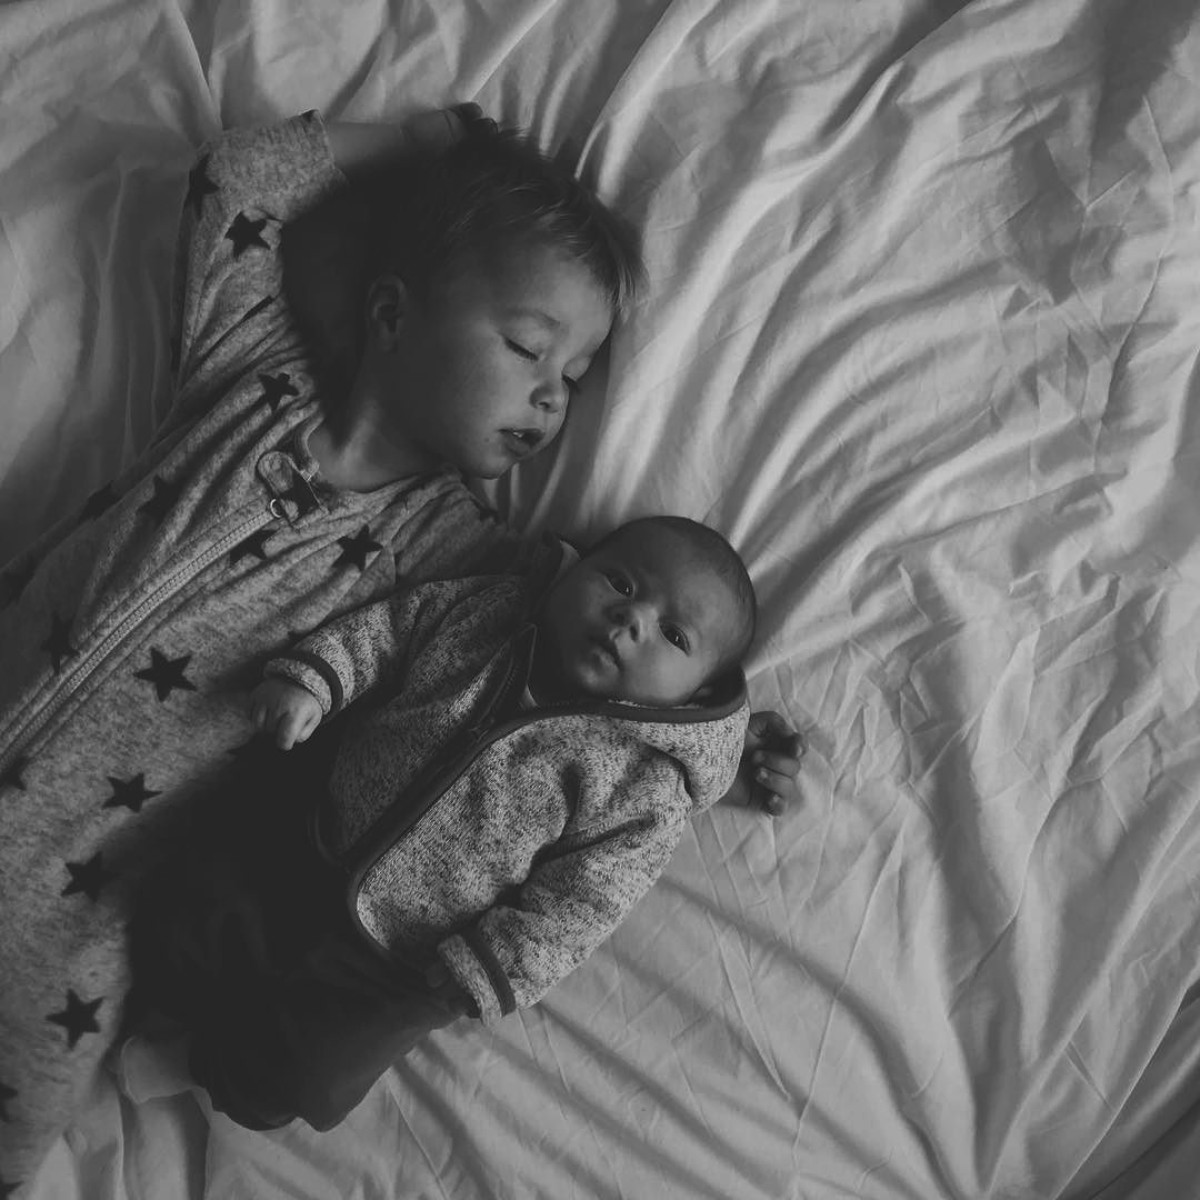 Our month in insta-snaps; October 2016 - Sleeping toddler with arm around newborn baby brother